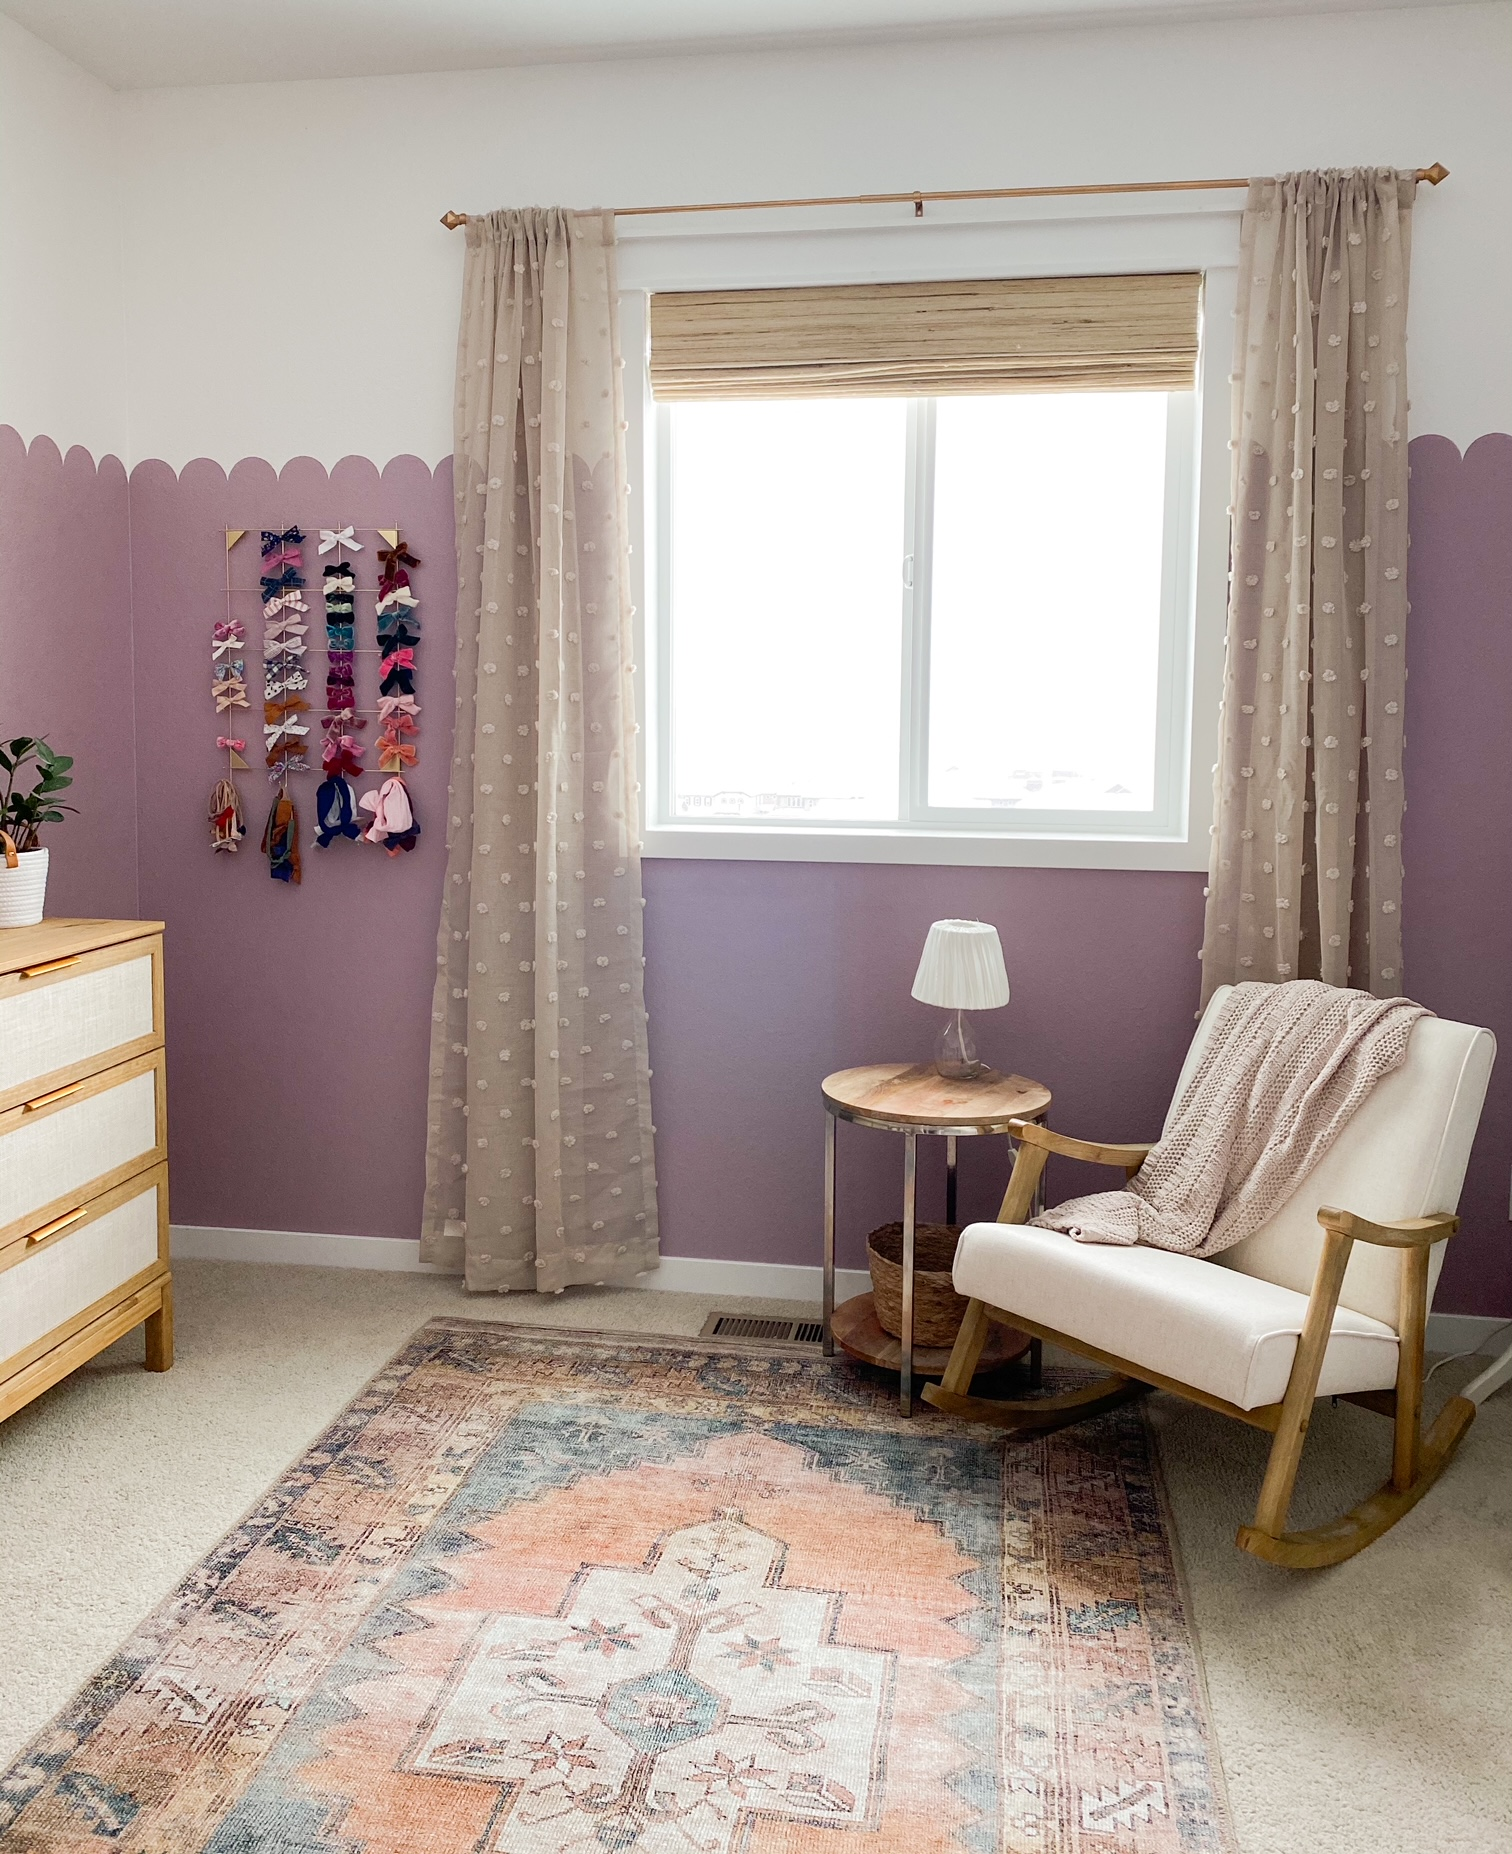 Amazon curtains that are affordable for a nursery!